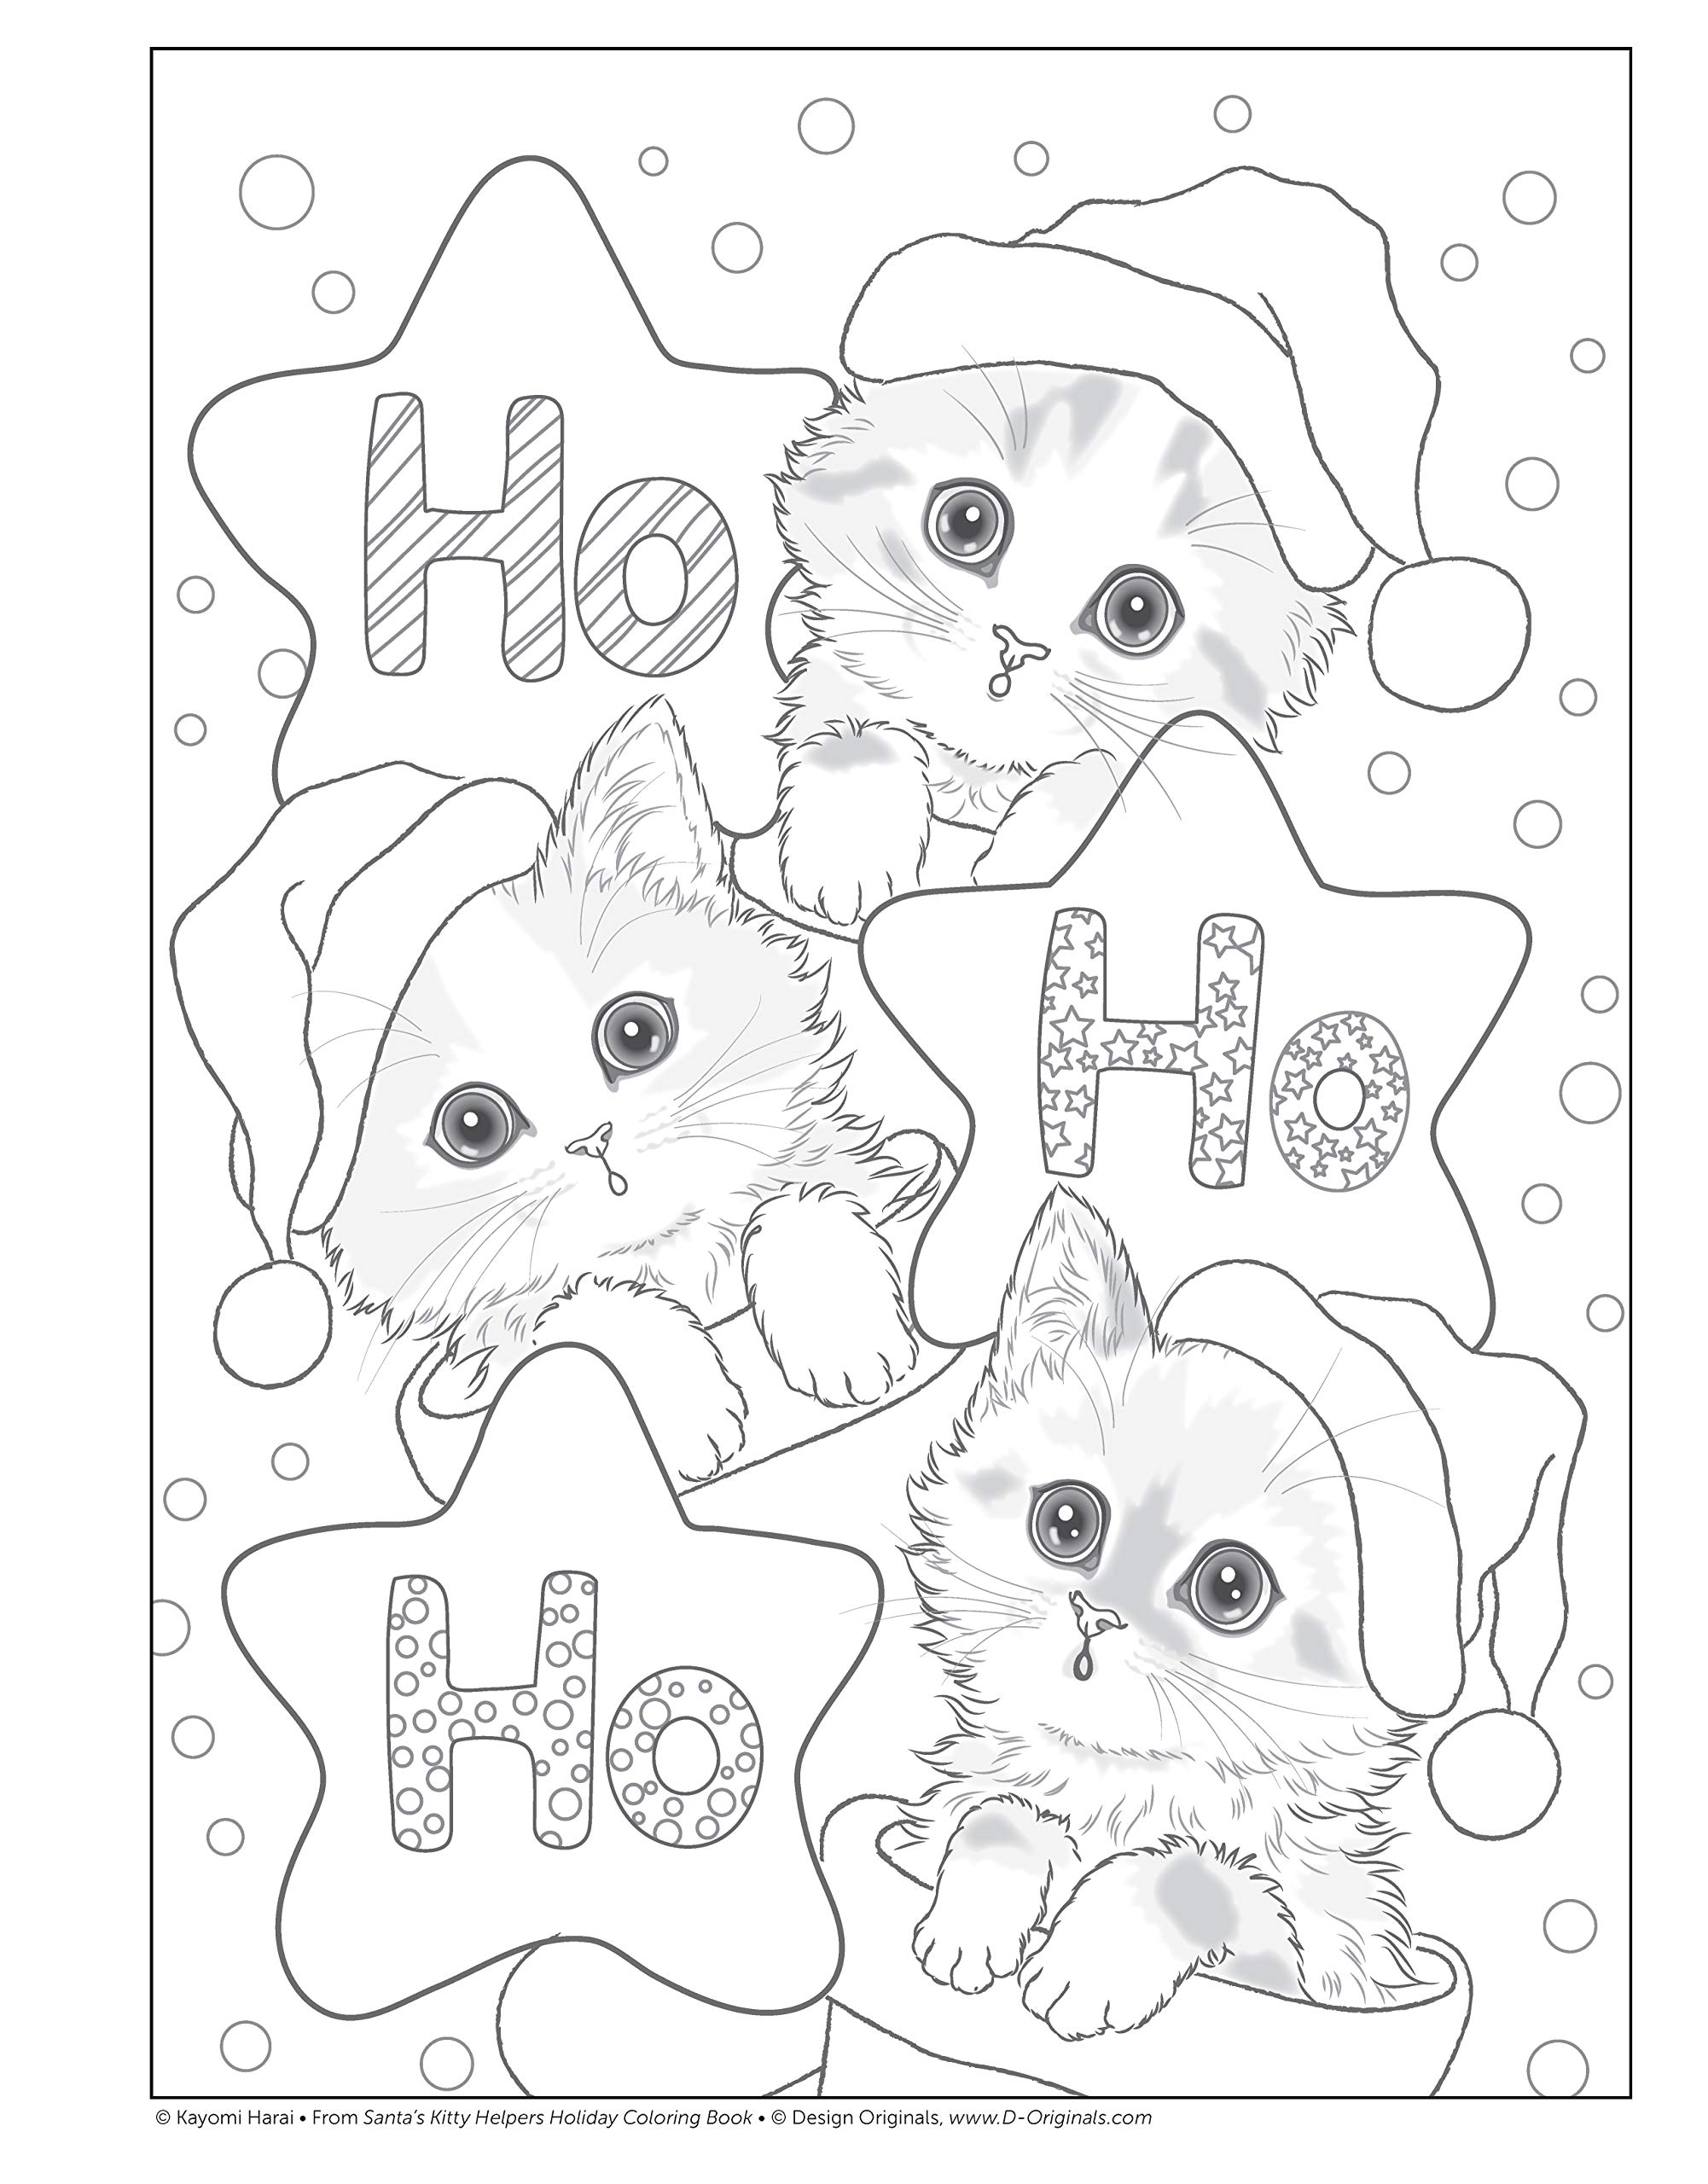 amazoncom santas kitty helpers holiday coloring book design originals 32 cute expressive eyed christmas cat designs by kayomi harai on high quality